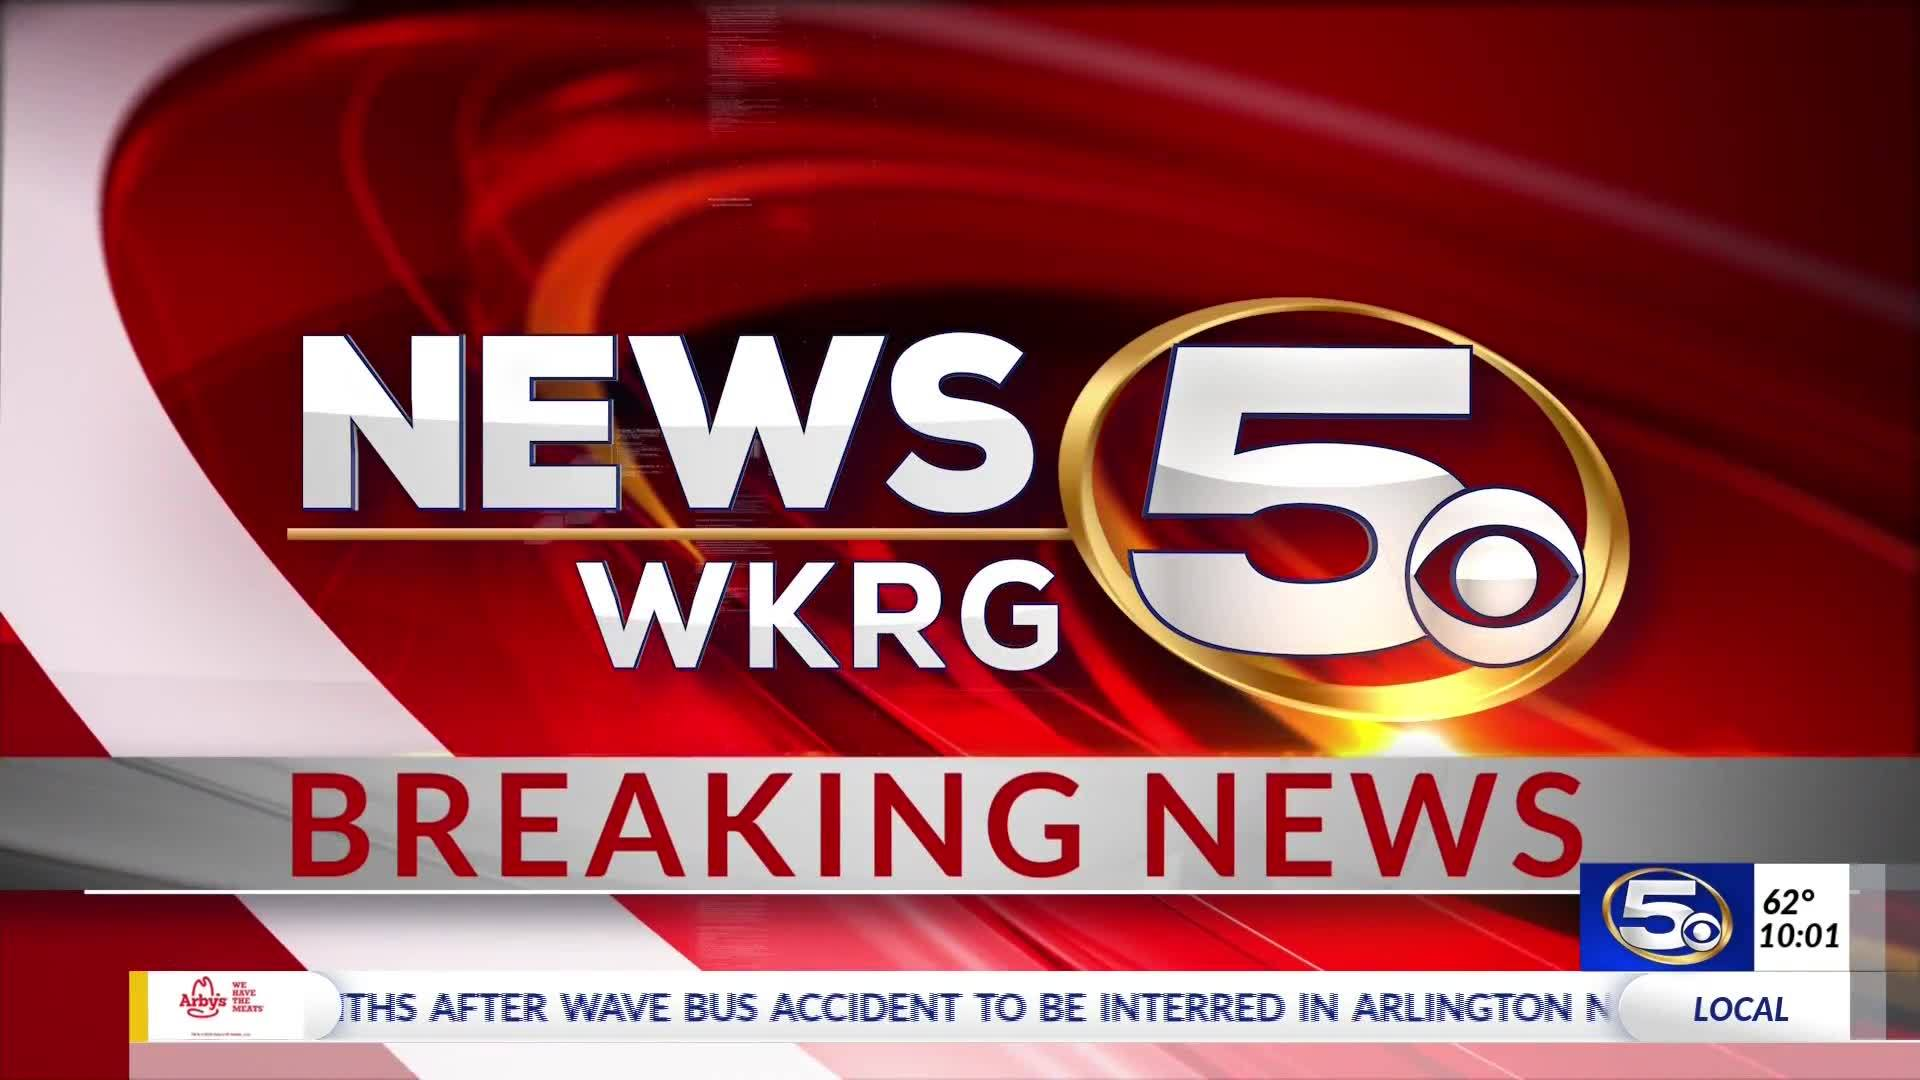 25-year-old male shot on Lincoln Blvd near 13th Street